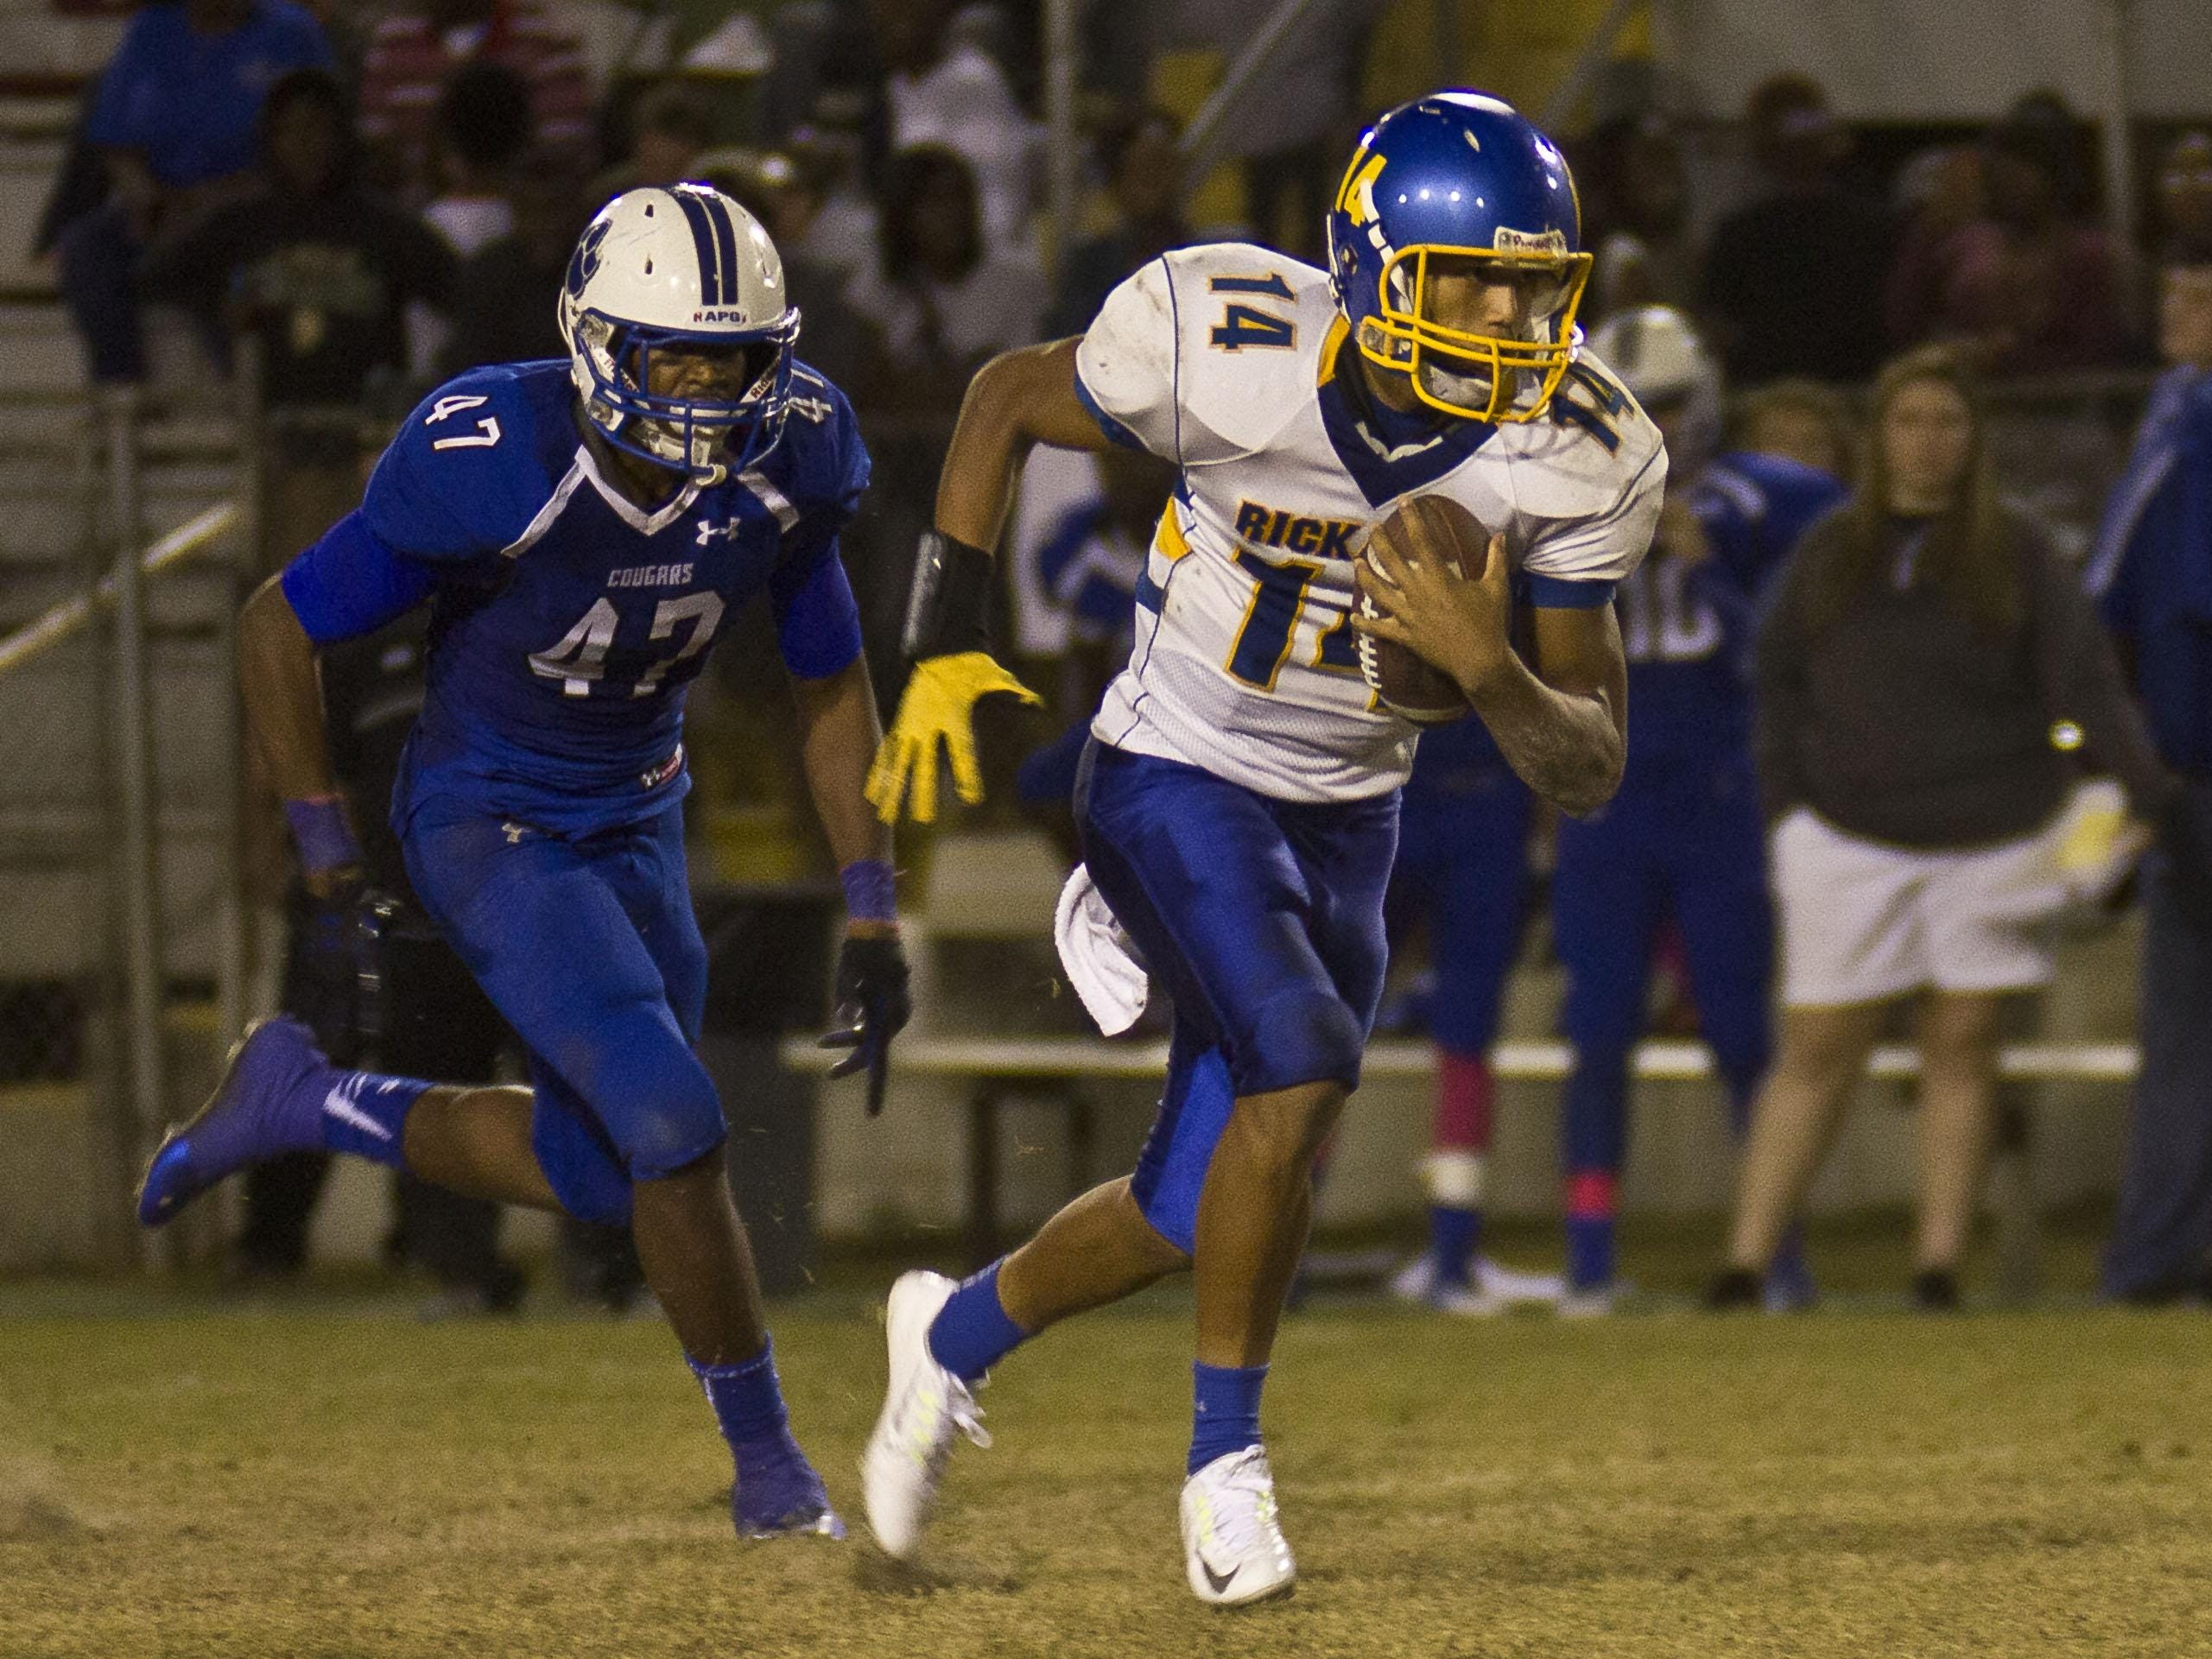 Rickards quarterback D.J. Phillips and company look to snap Godby's long streak of making the playoffs. The two teams will fight for one playoff spot tonight at Gene Cox Stadium.